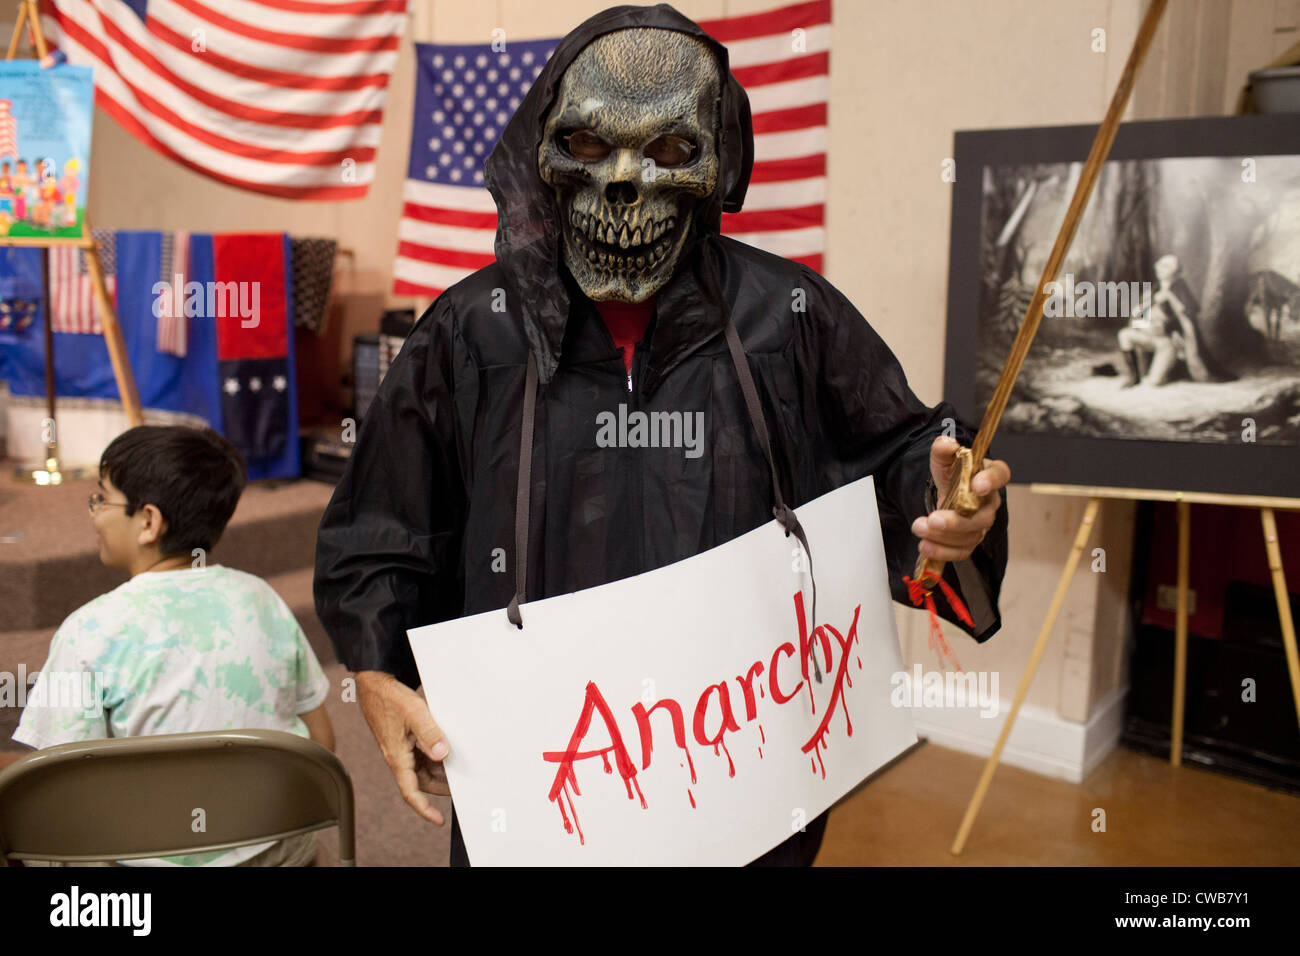 Volunteer dressed as ghoulish 'Anarchy' helps teach lesson on balancing tyranny and anarchy in order to - Stock Image